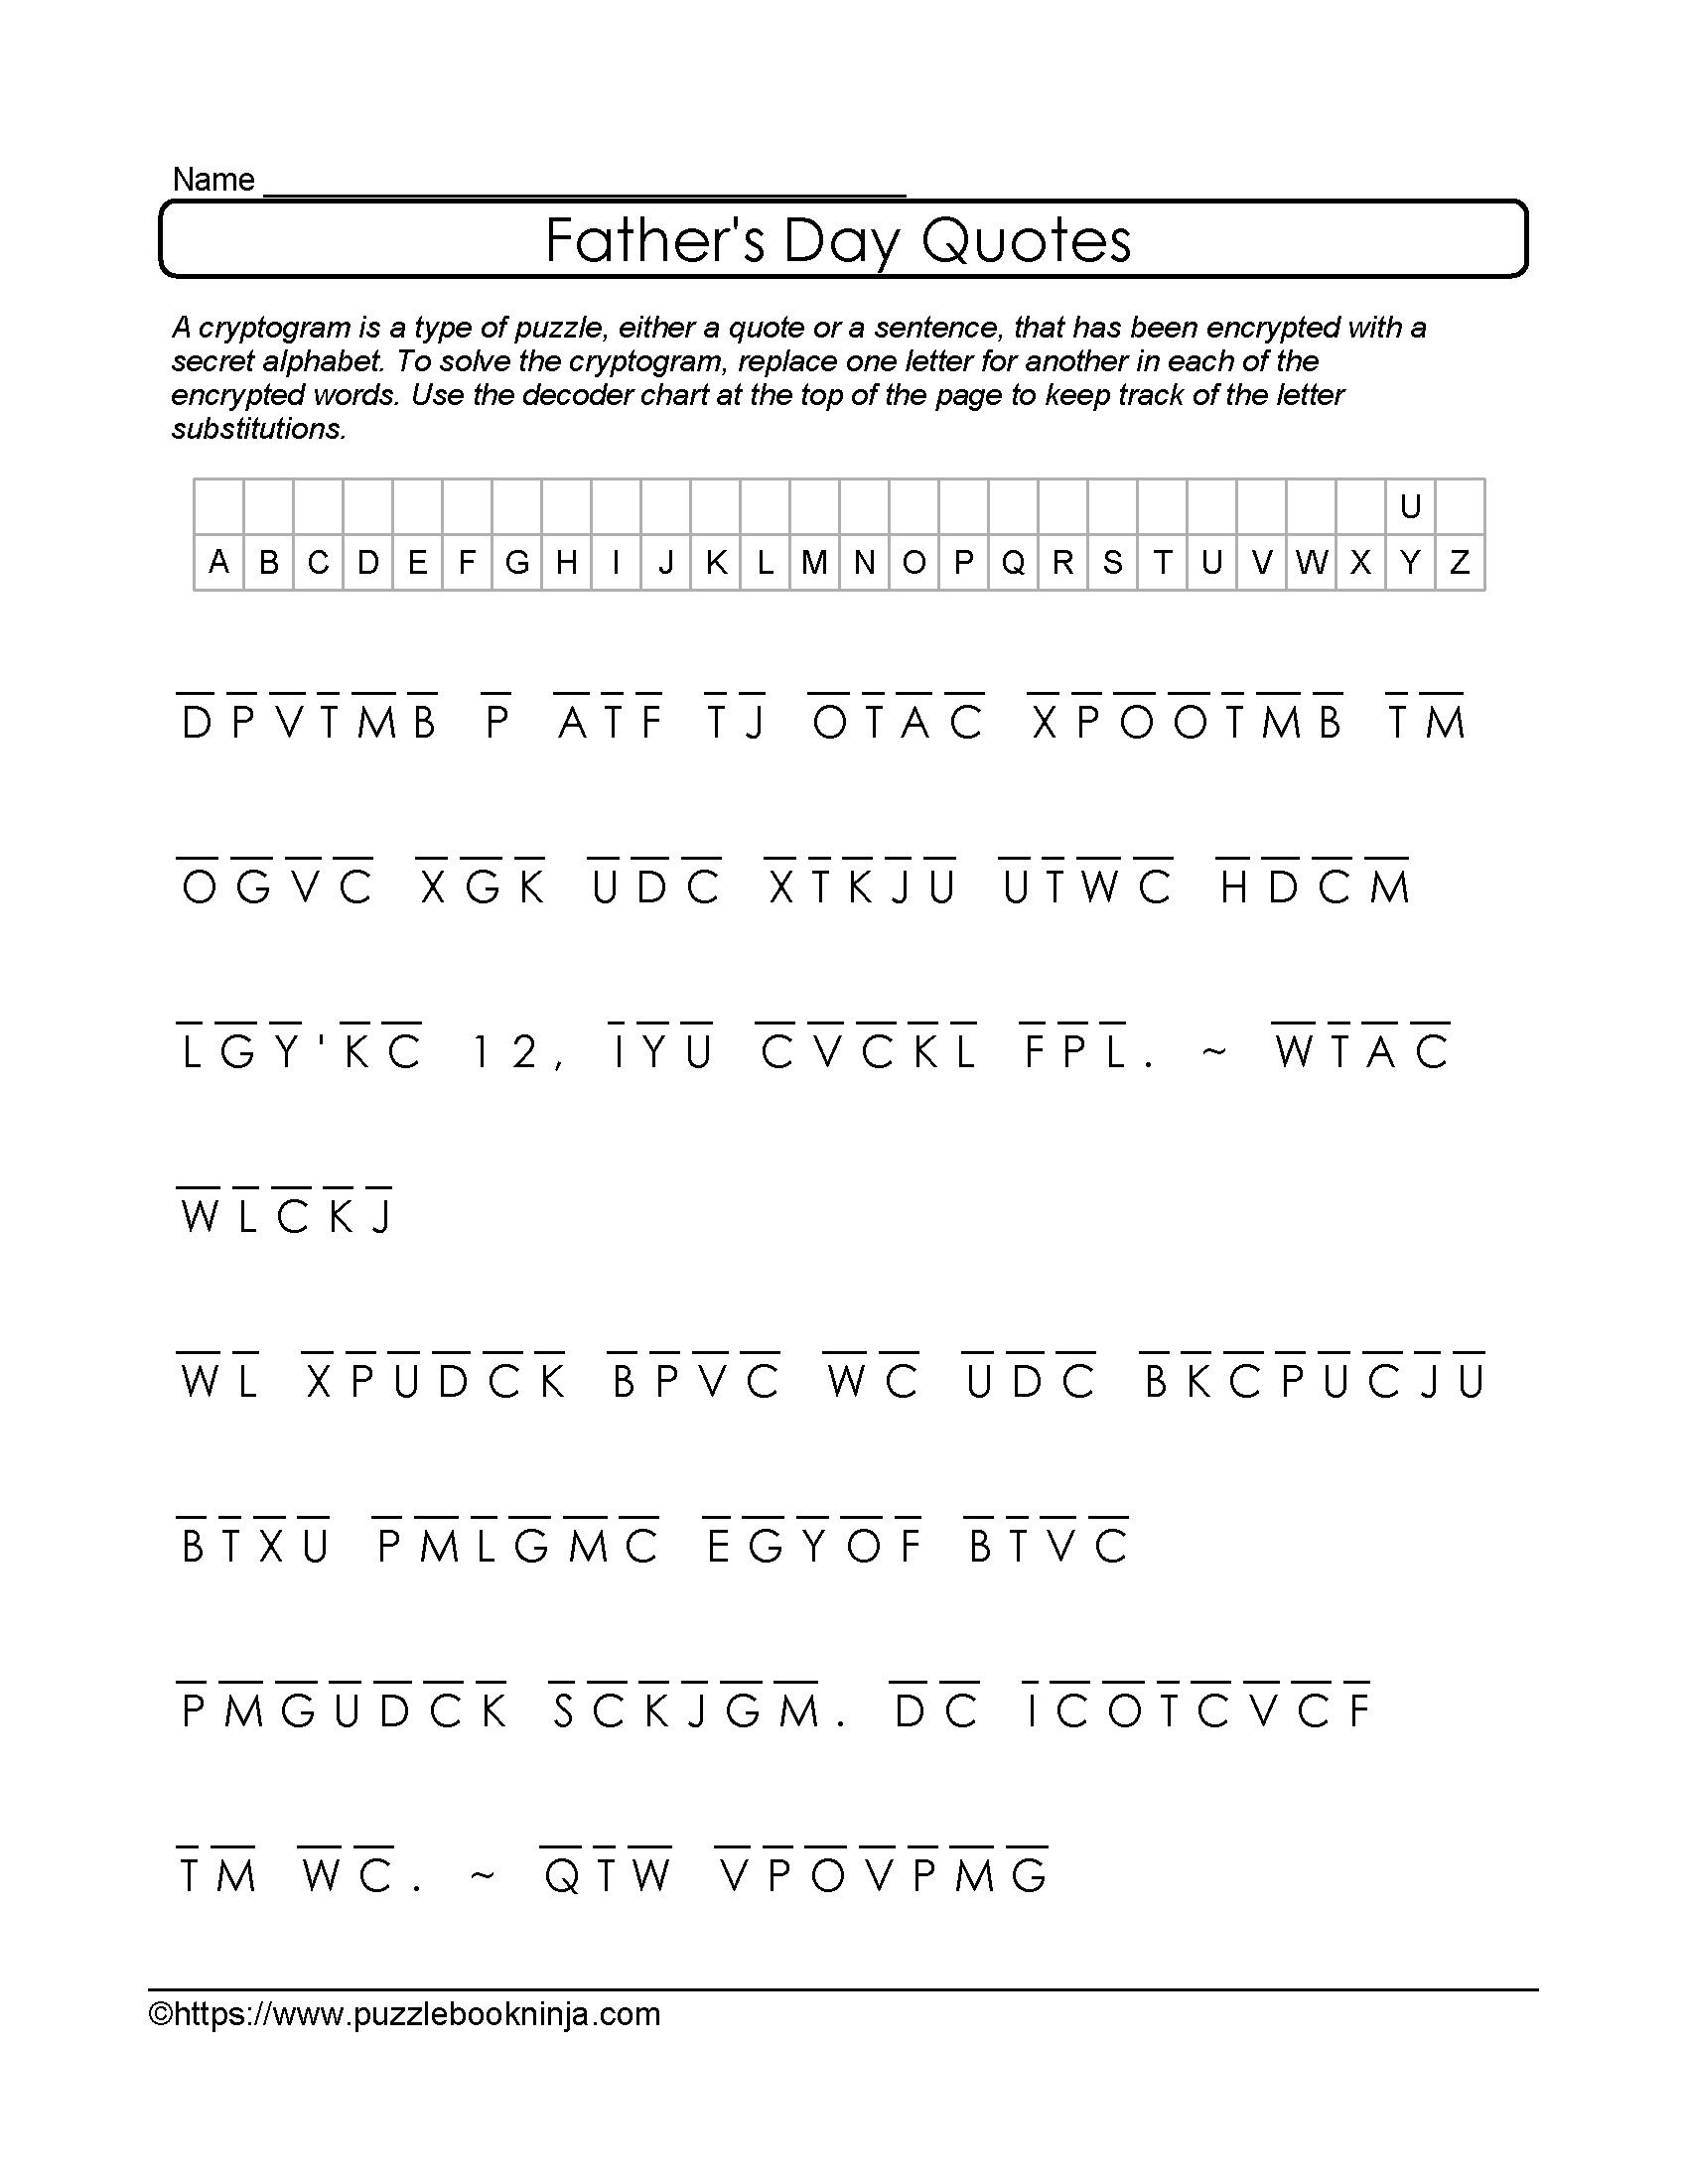 Free And Printable Father's Day Cryptogram. Quotes About Dad - Free Printable Cryptoquip Puzzles